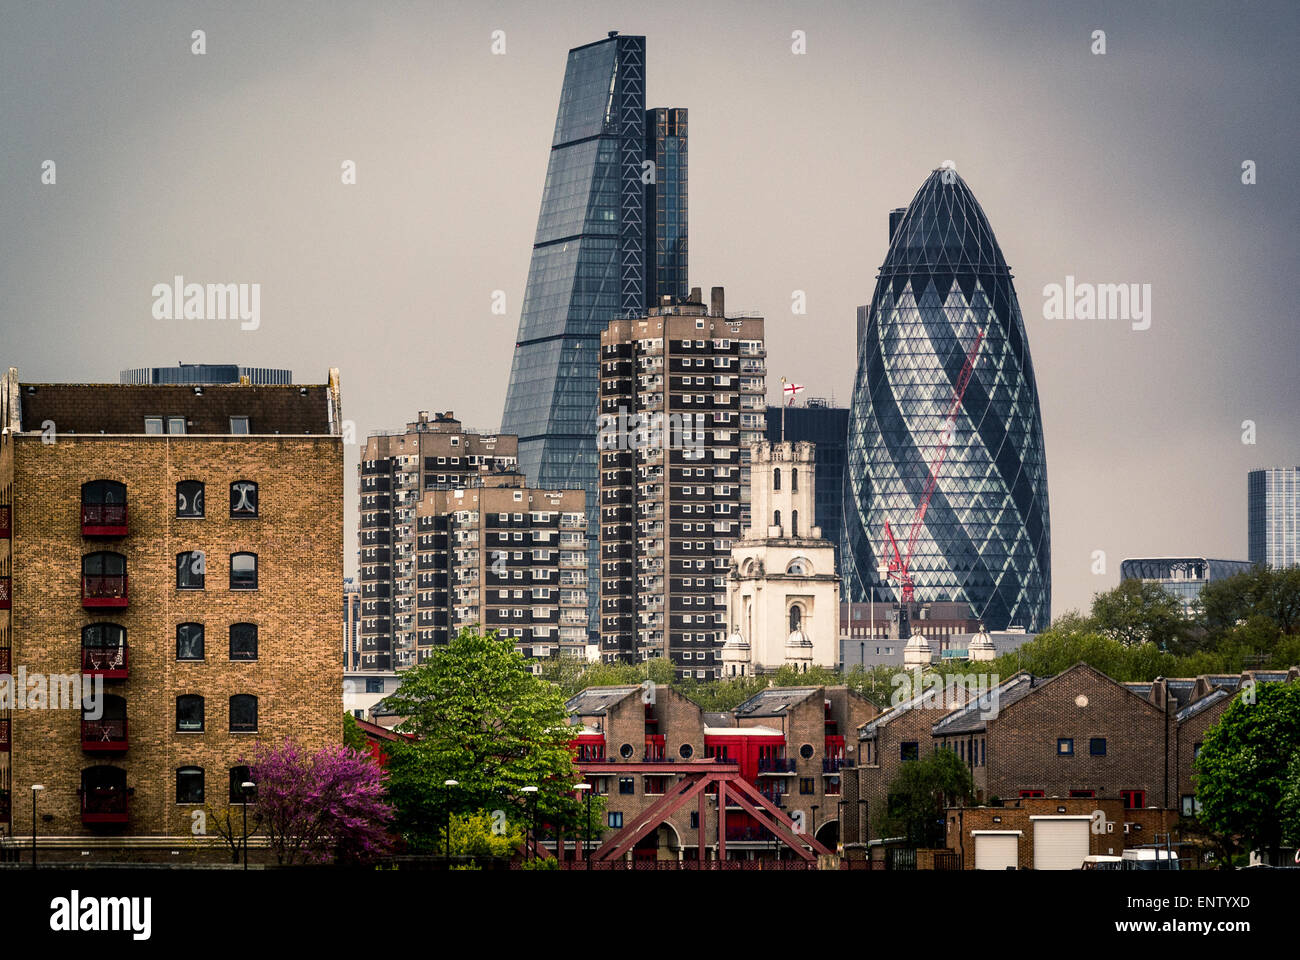 The Gherkin and Cheese Grater buildings from south side of river Thames. - Stock Image